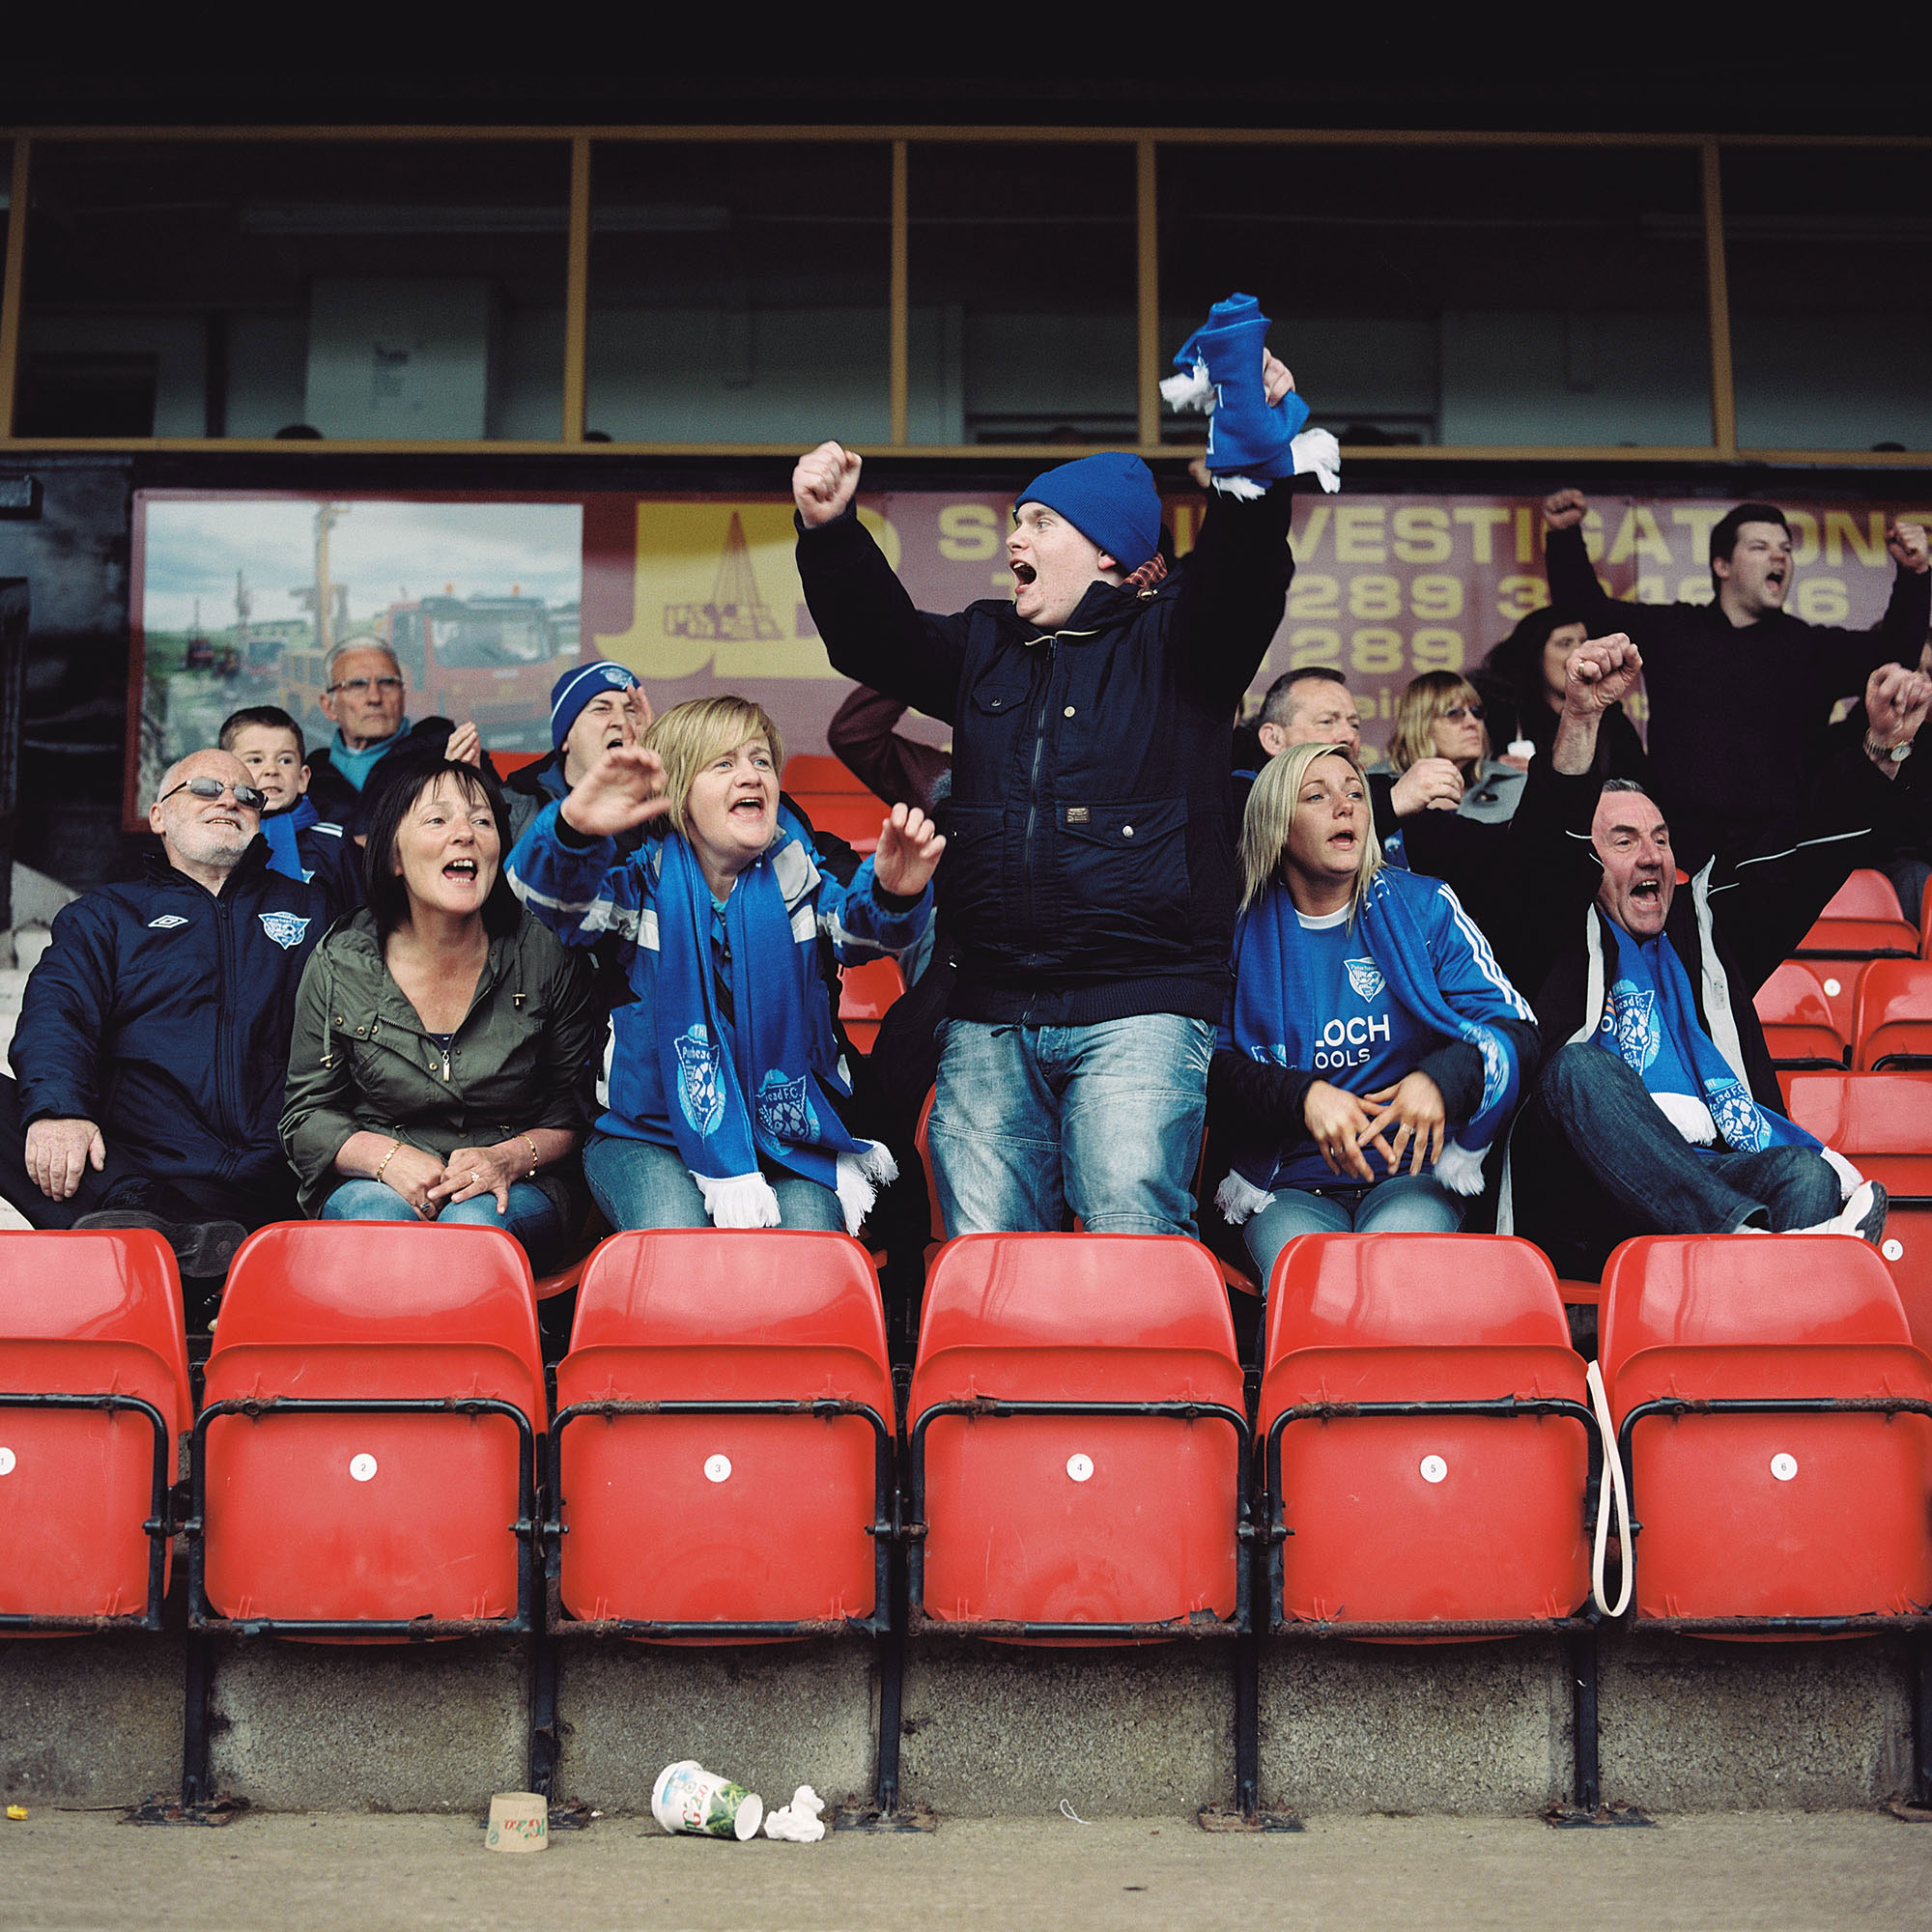 Peterhead fans celebrate their team scoring against Berwick Rangers in their 2-1 victory over the English side.